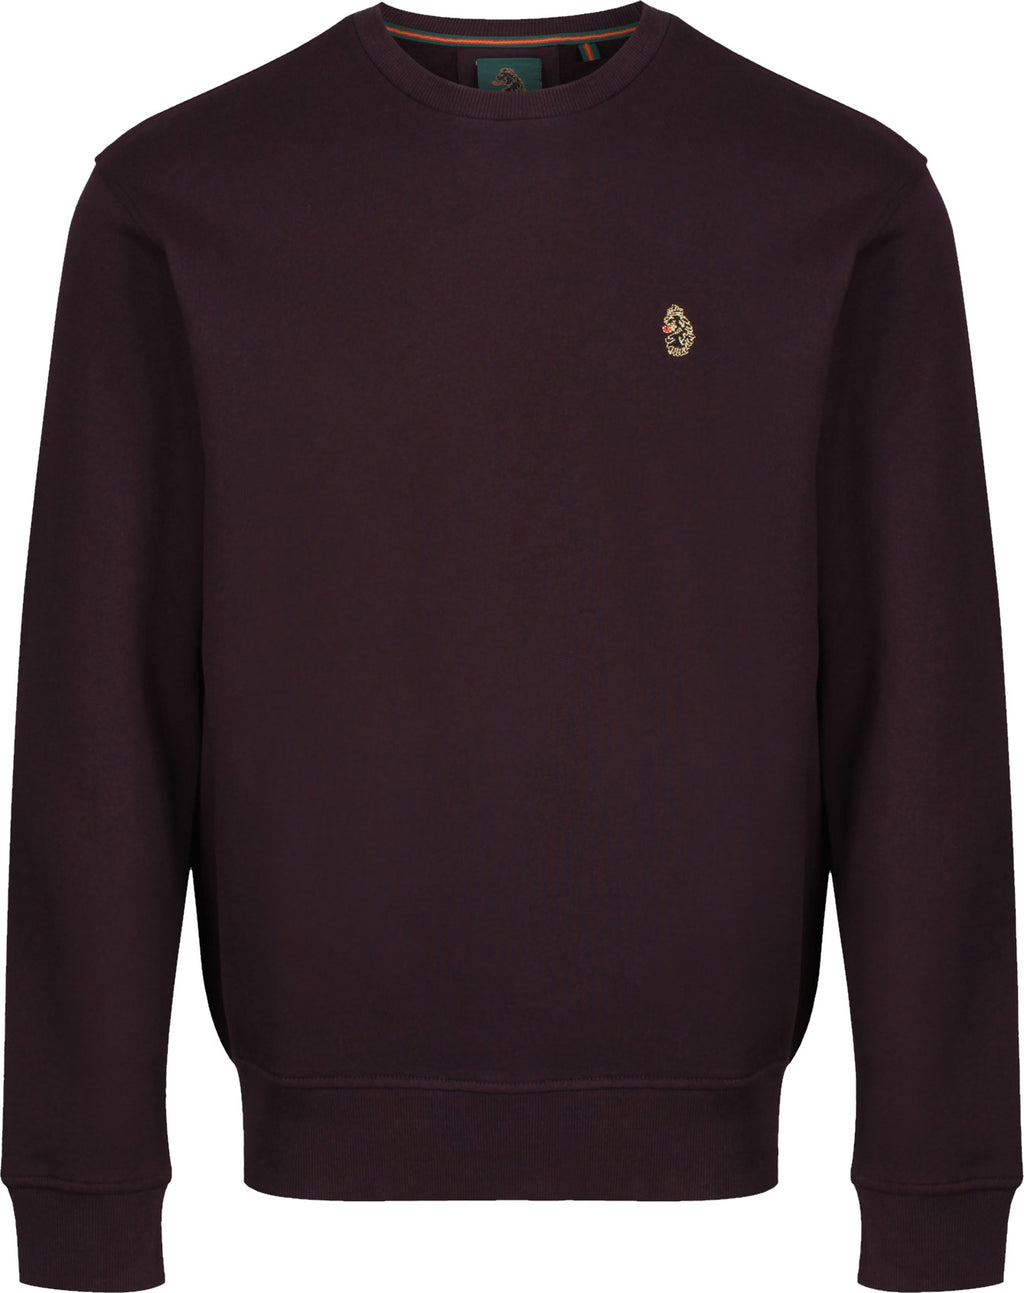 Luke 1977 London Sweatshirt	Rioja